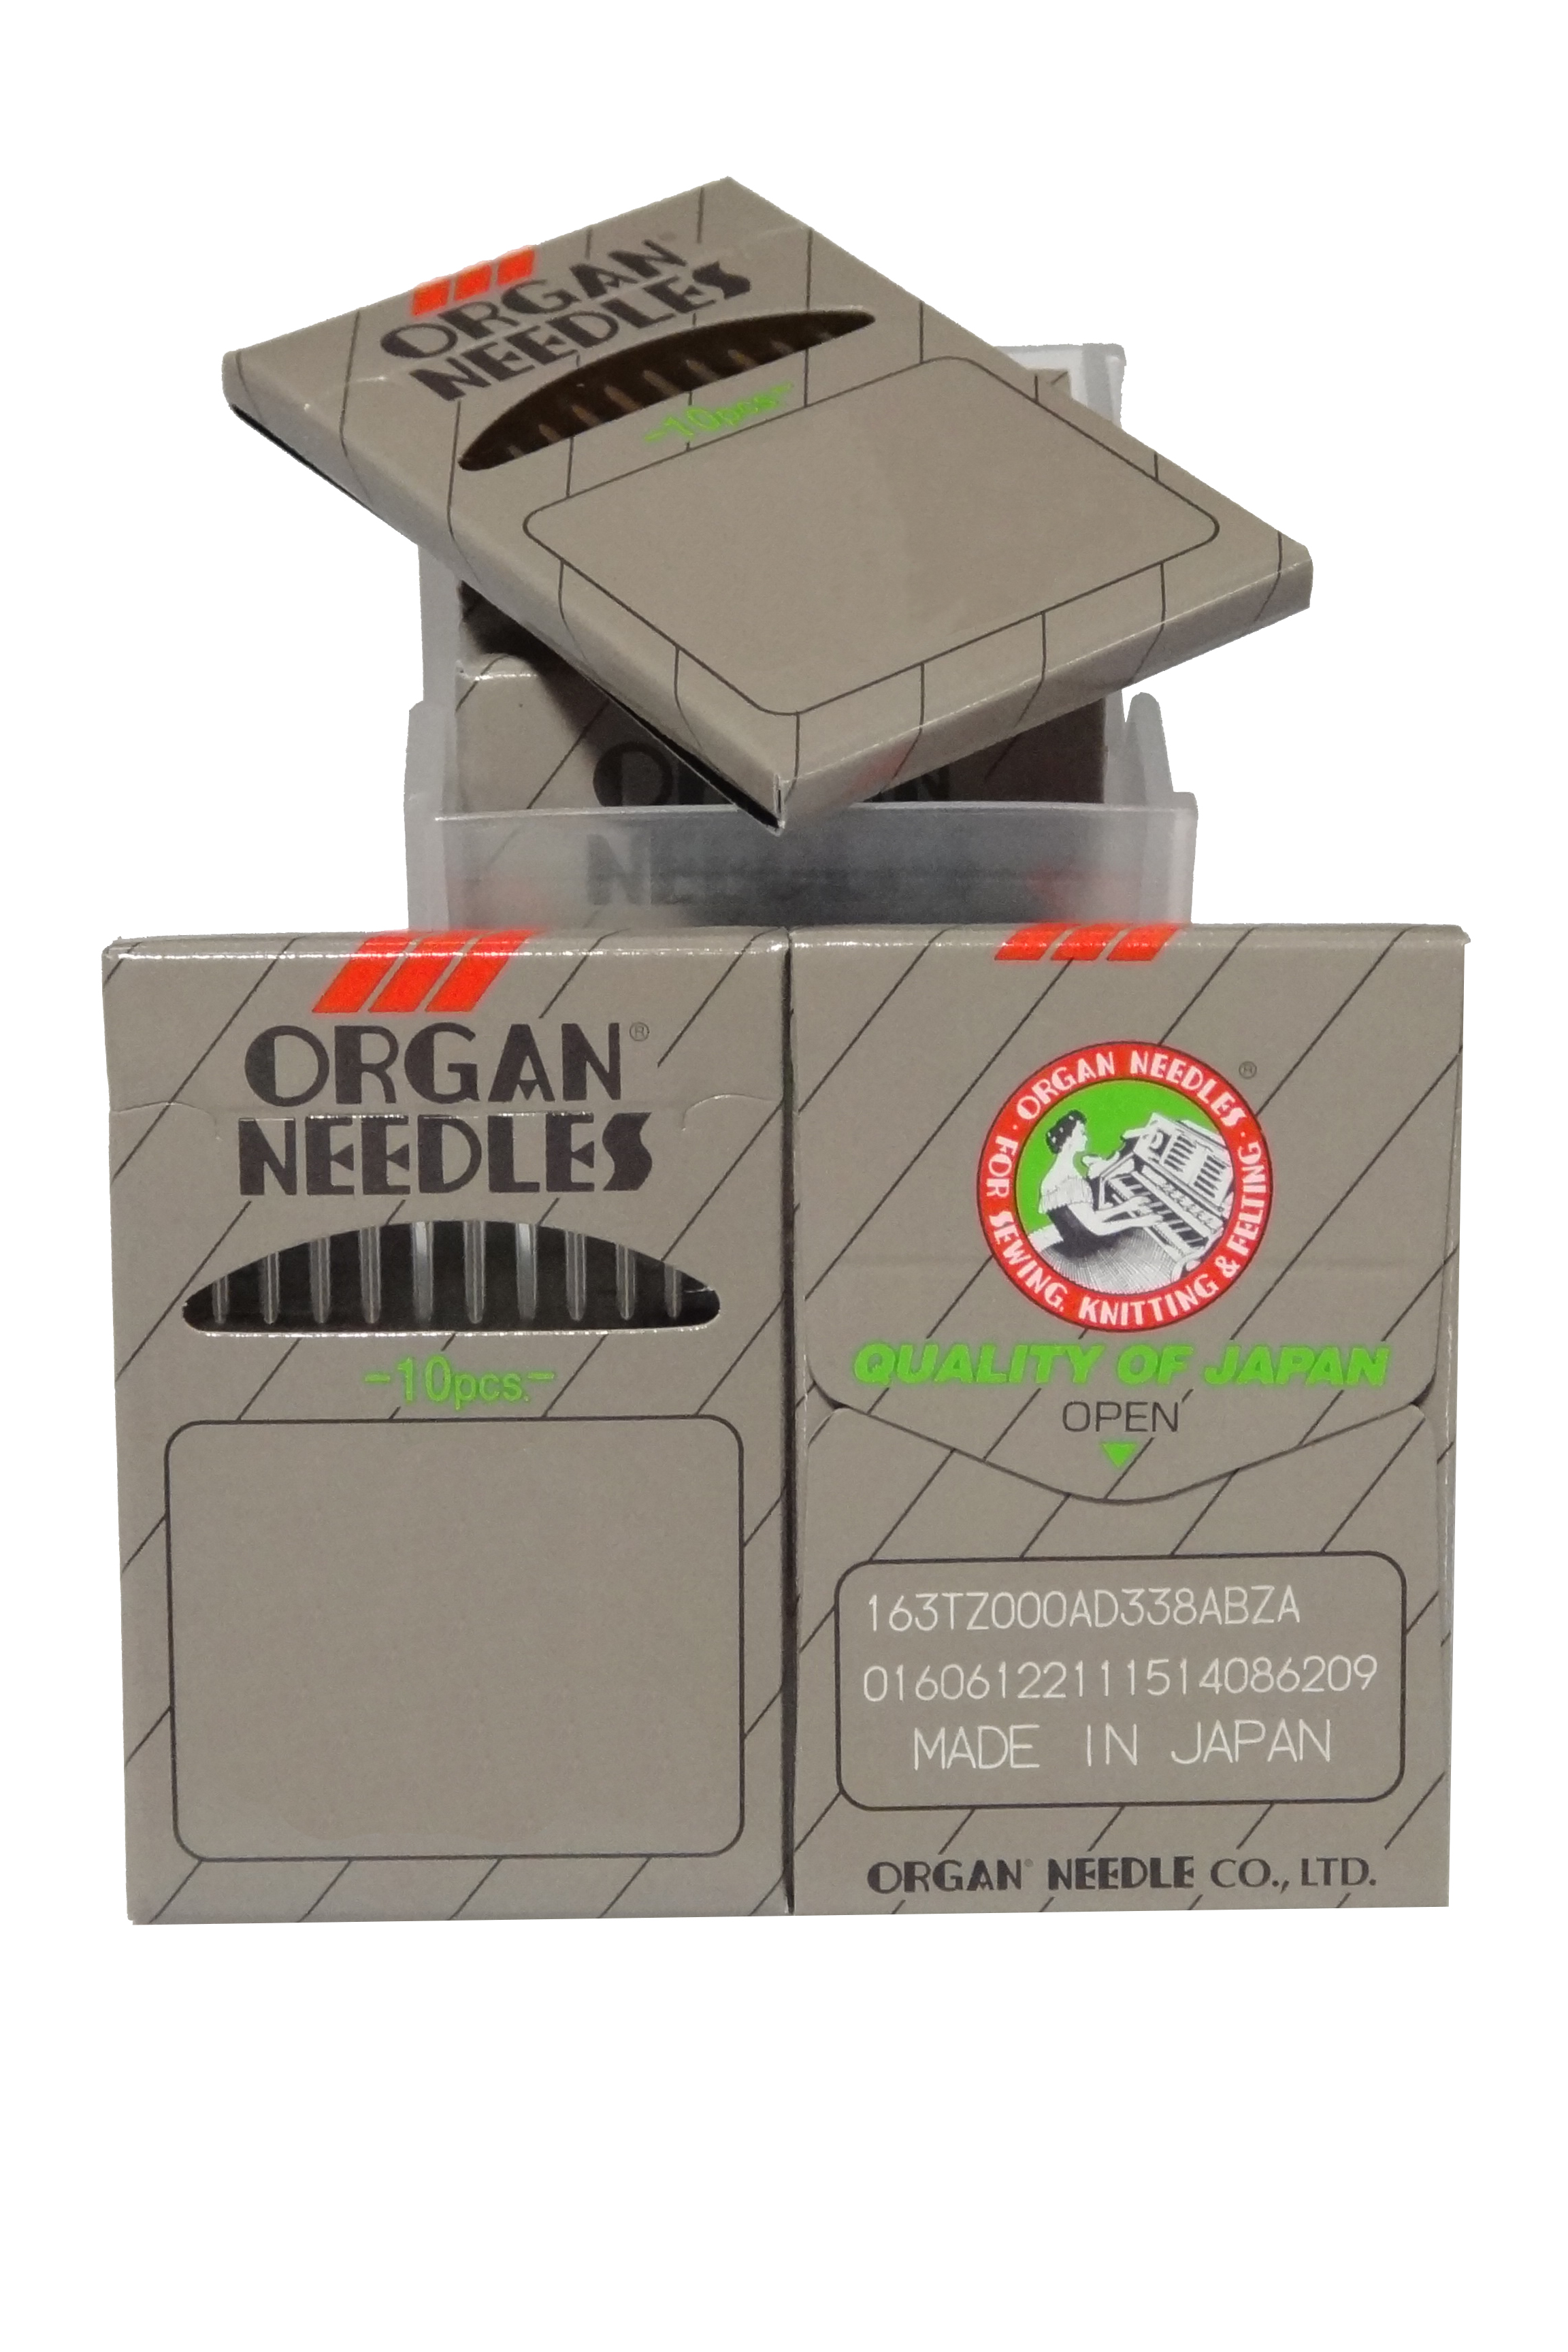 Organ DBx1, Industrial Sewing Machine Needles - BOX OF 100 NEEDLES - 16x95, 16x257, 16x231